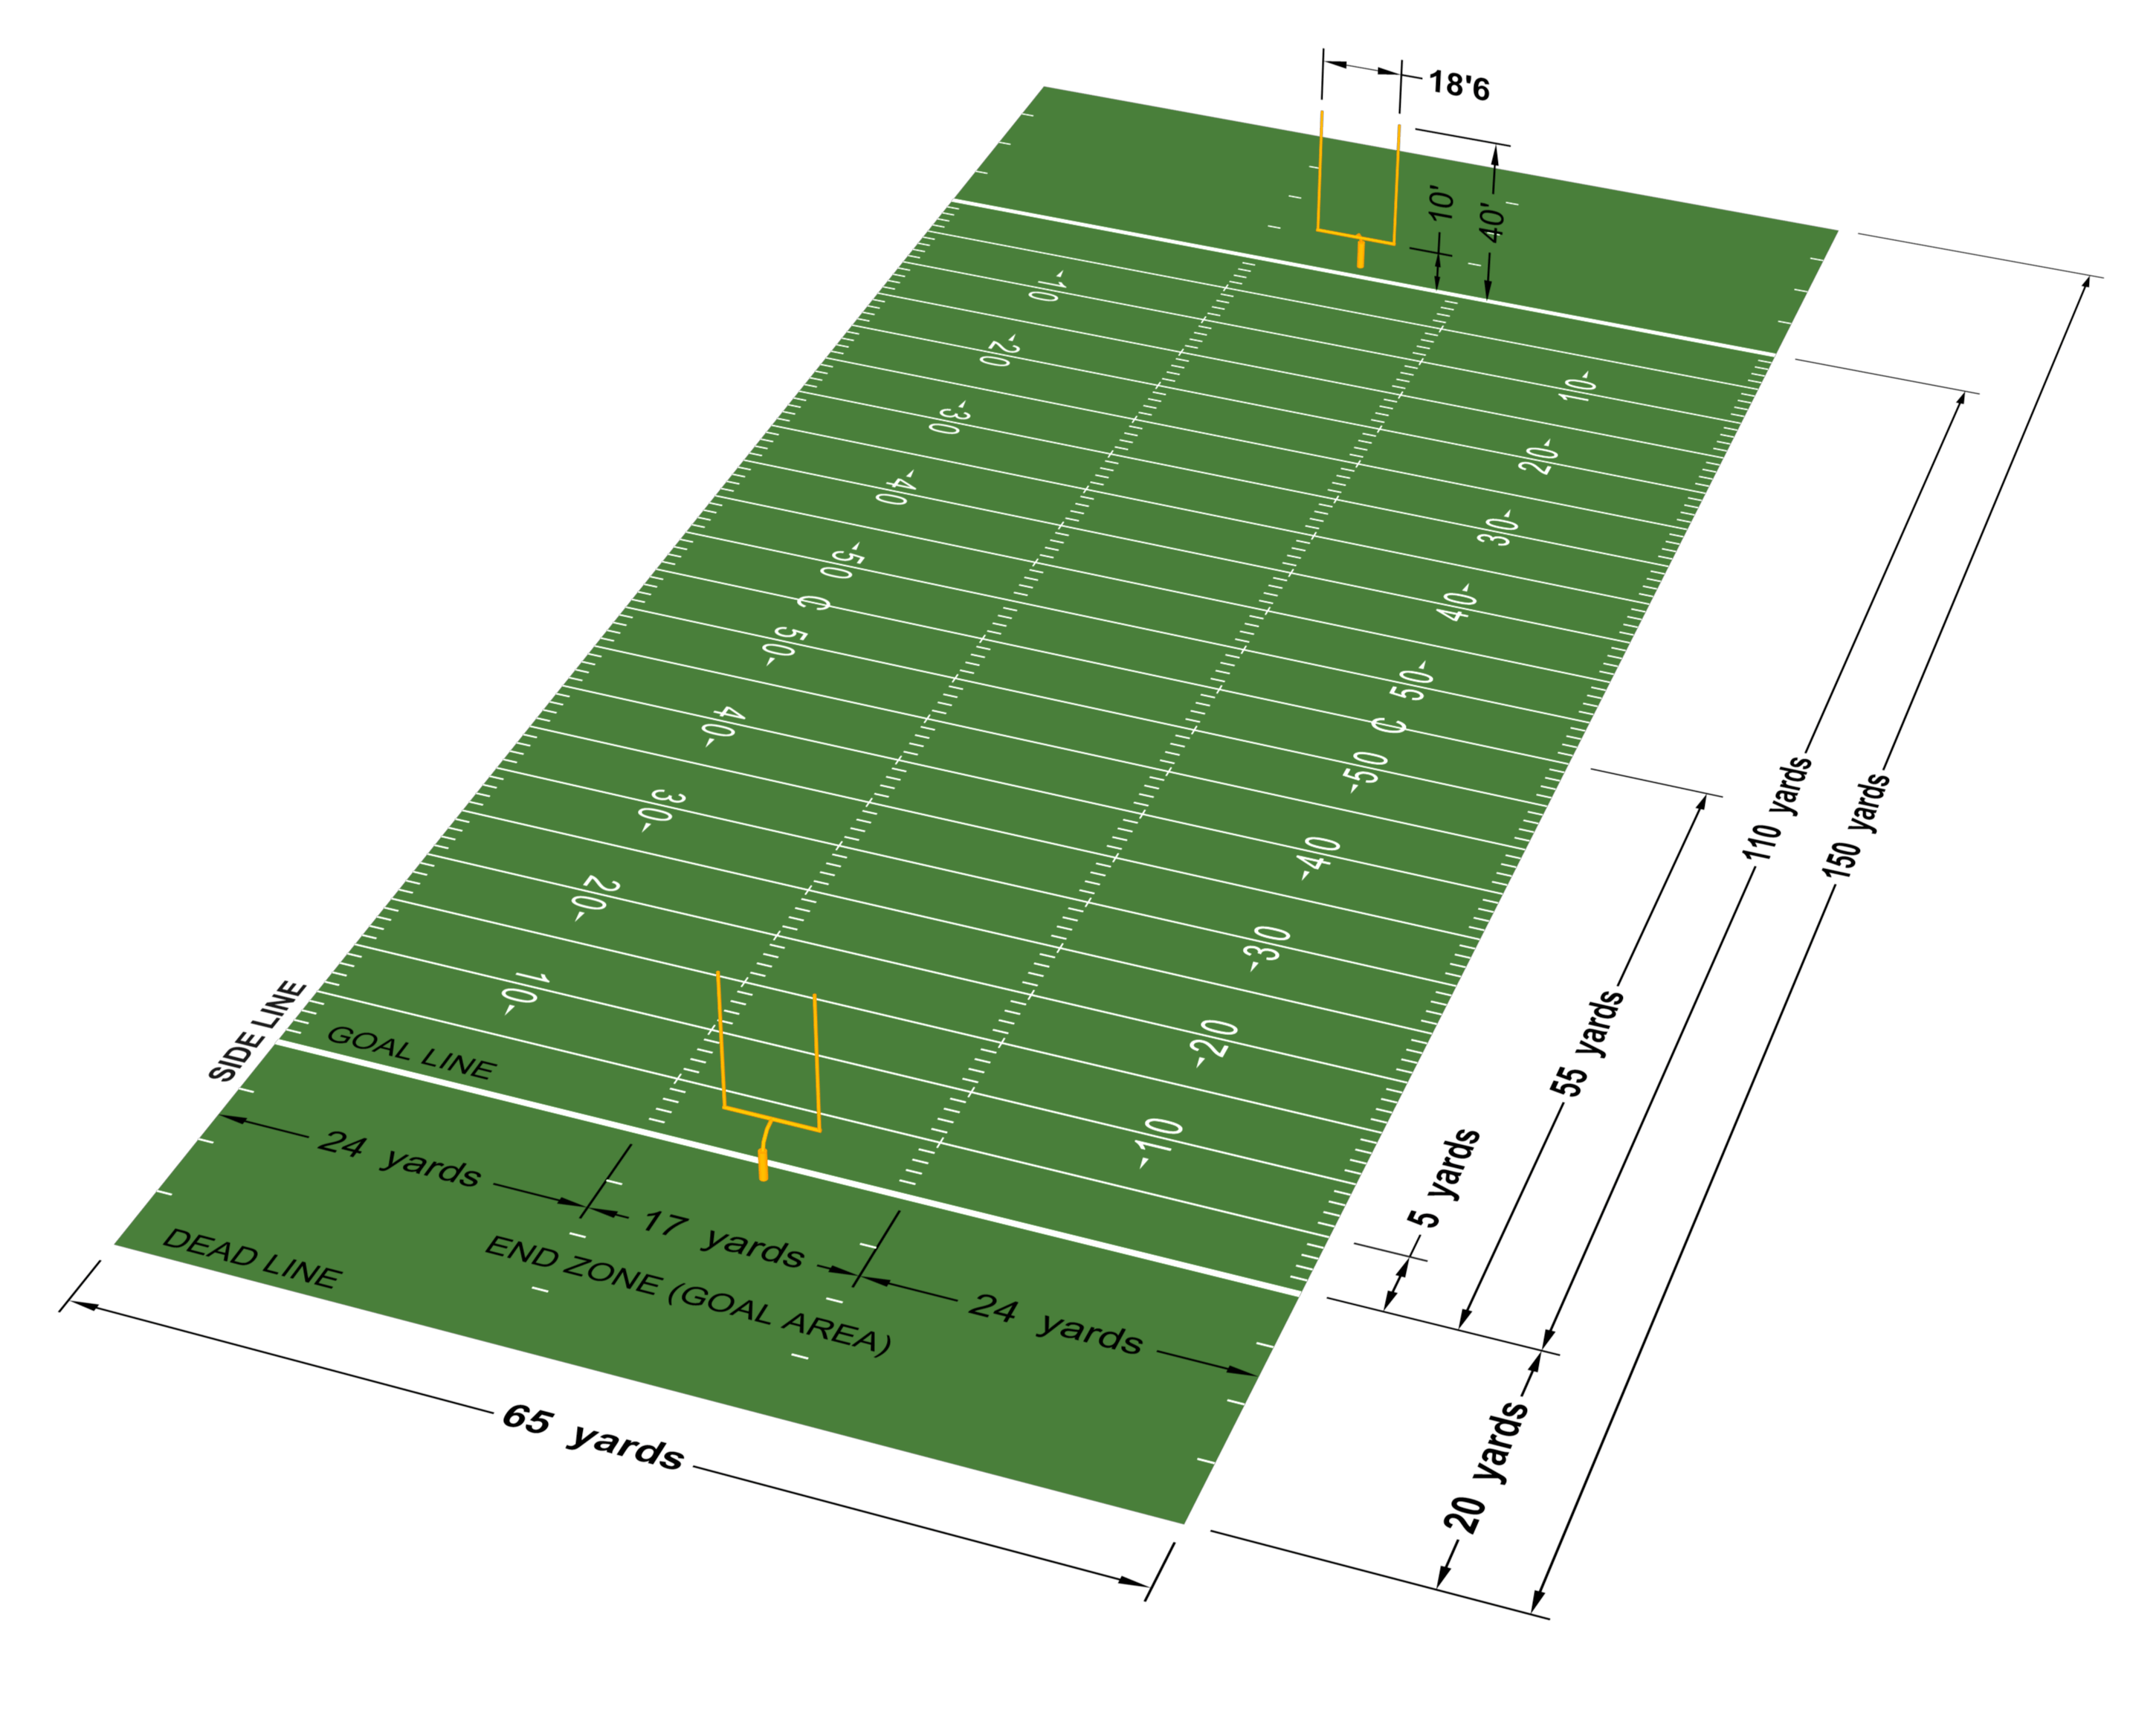 Canadian rules football field